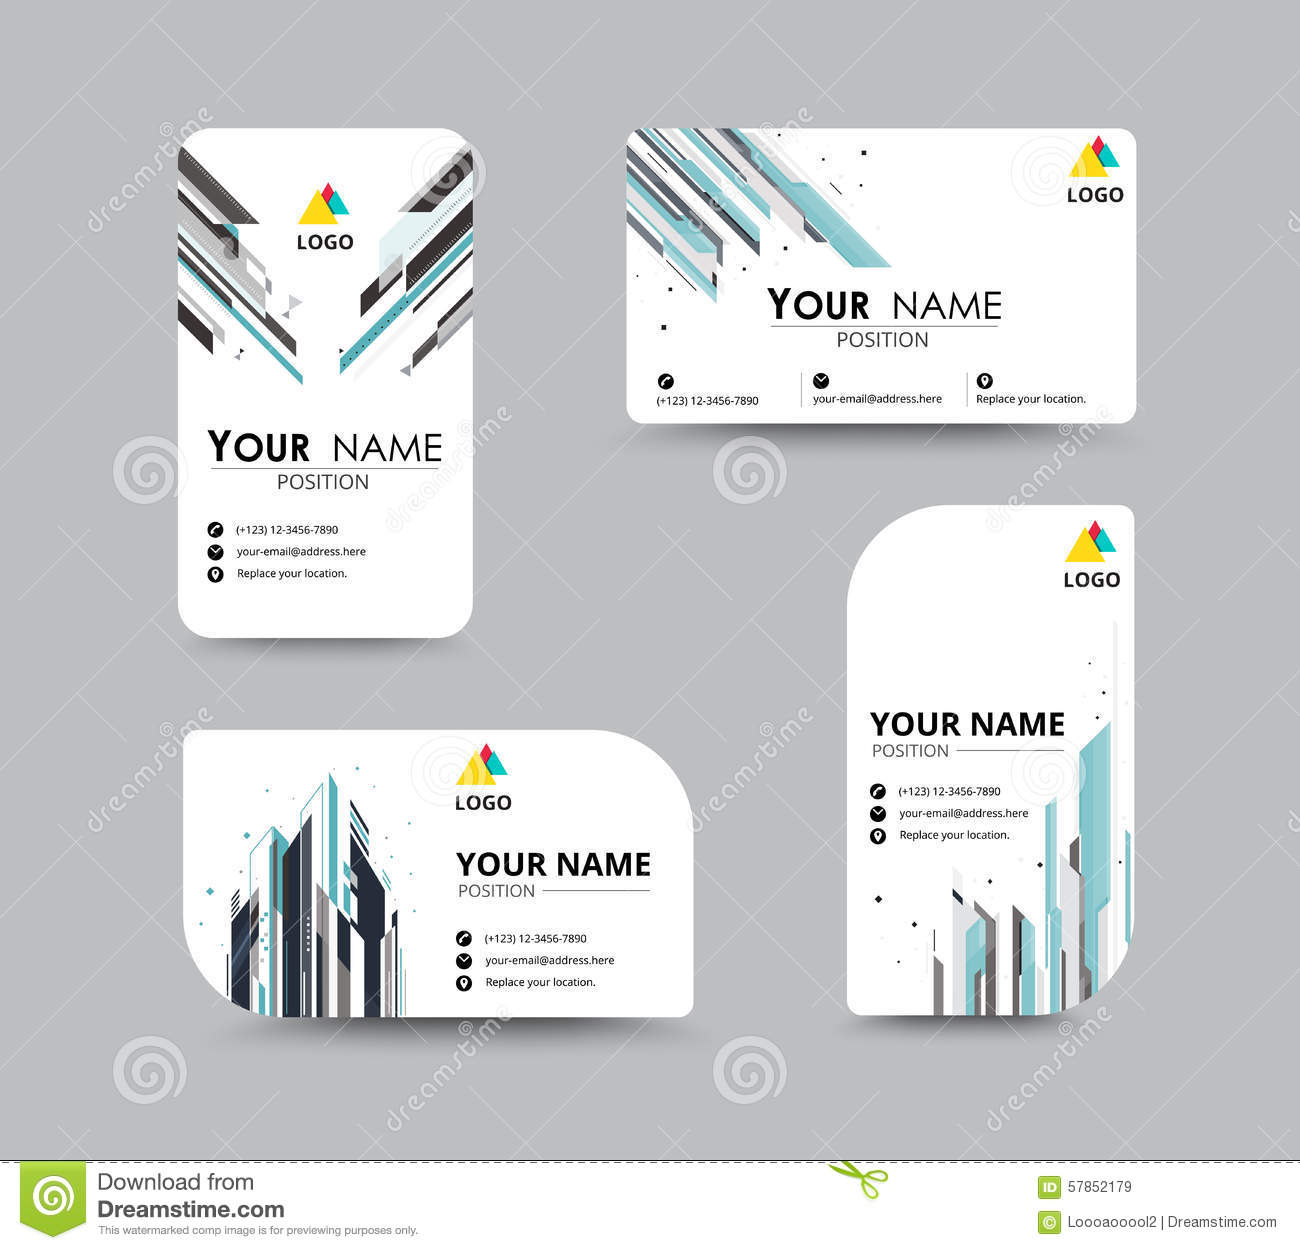 Abstract business card template with sample name position city abstract business card template with sample name position city colourmoves